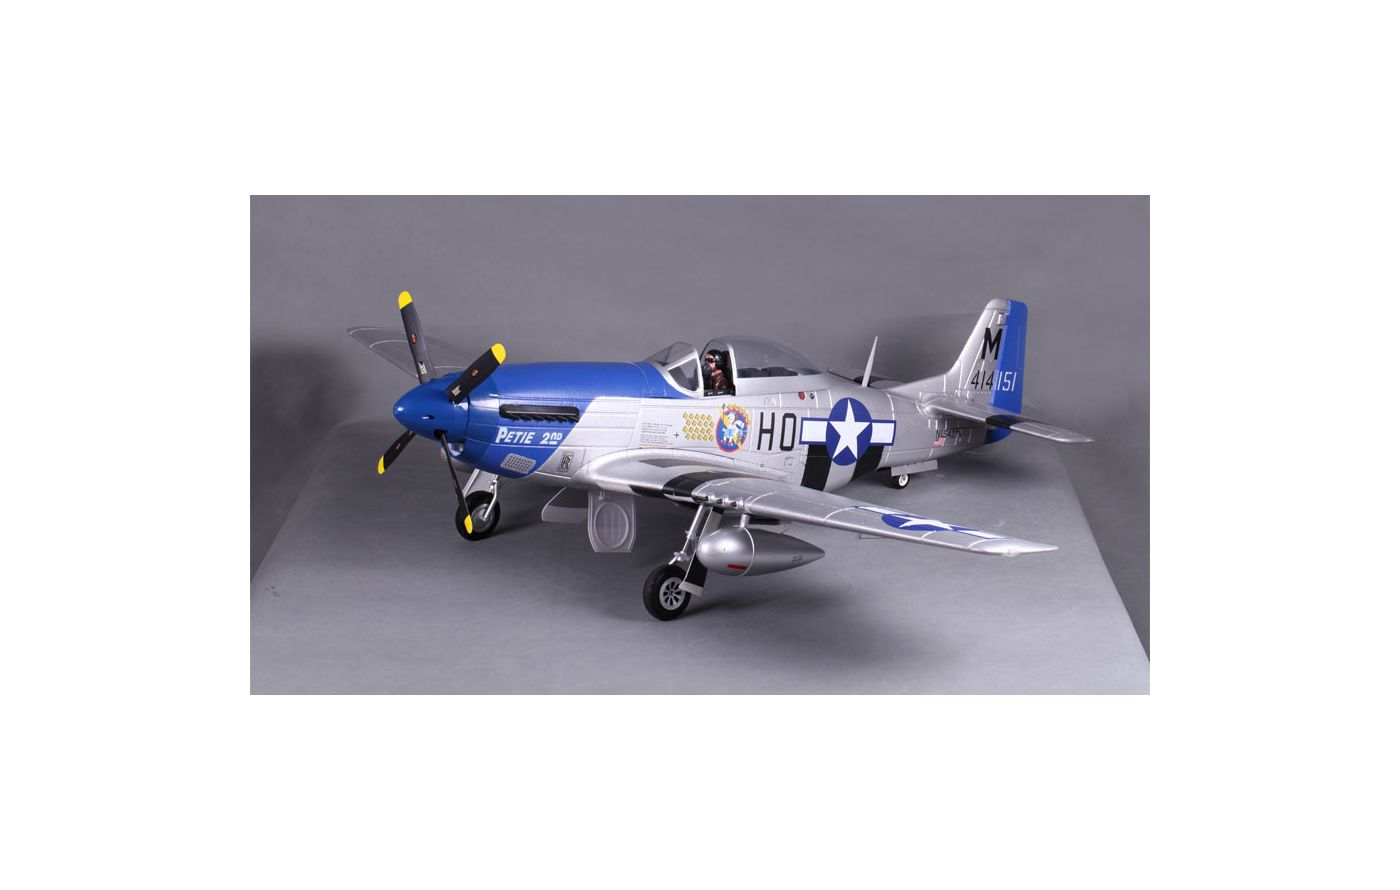 Image for P-51D Petie 2nd V8 PNP, 1450mm from Force RC